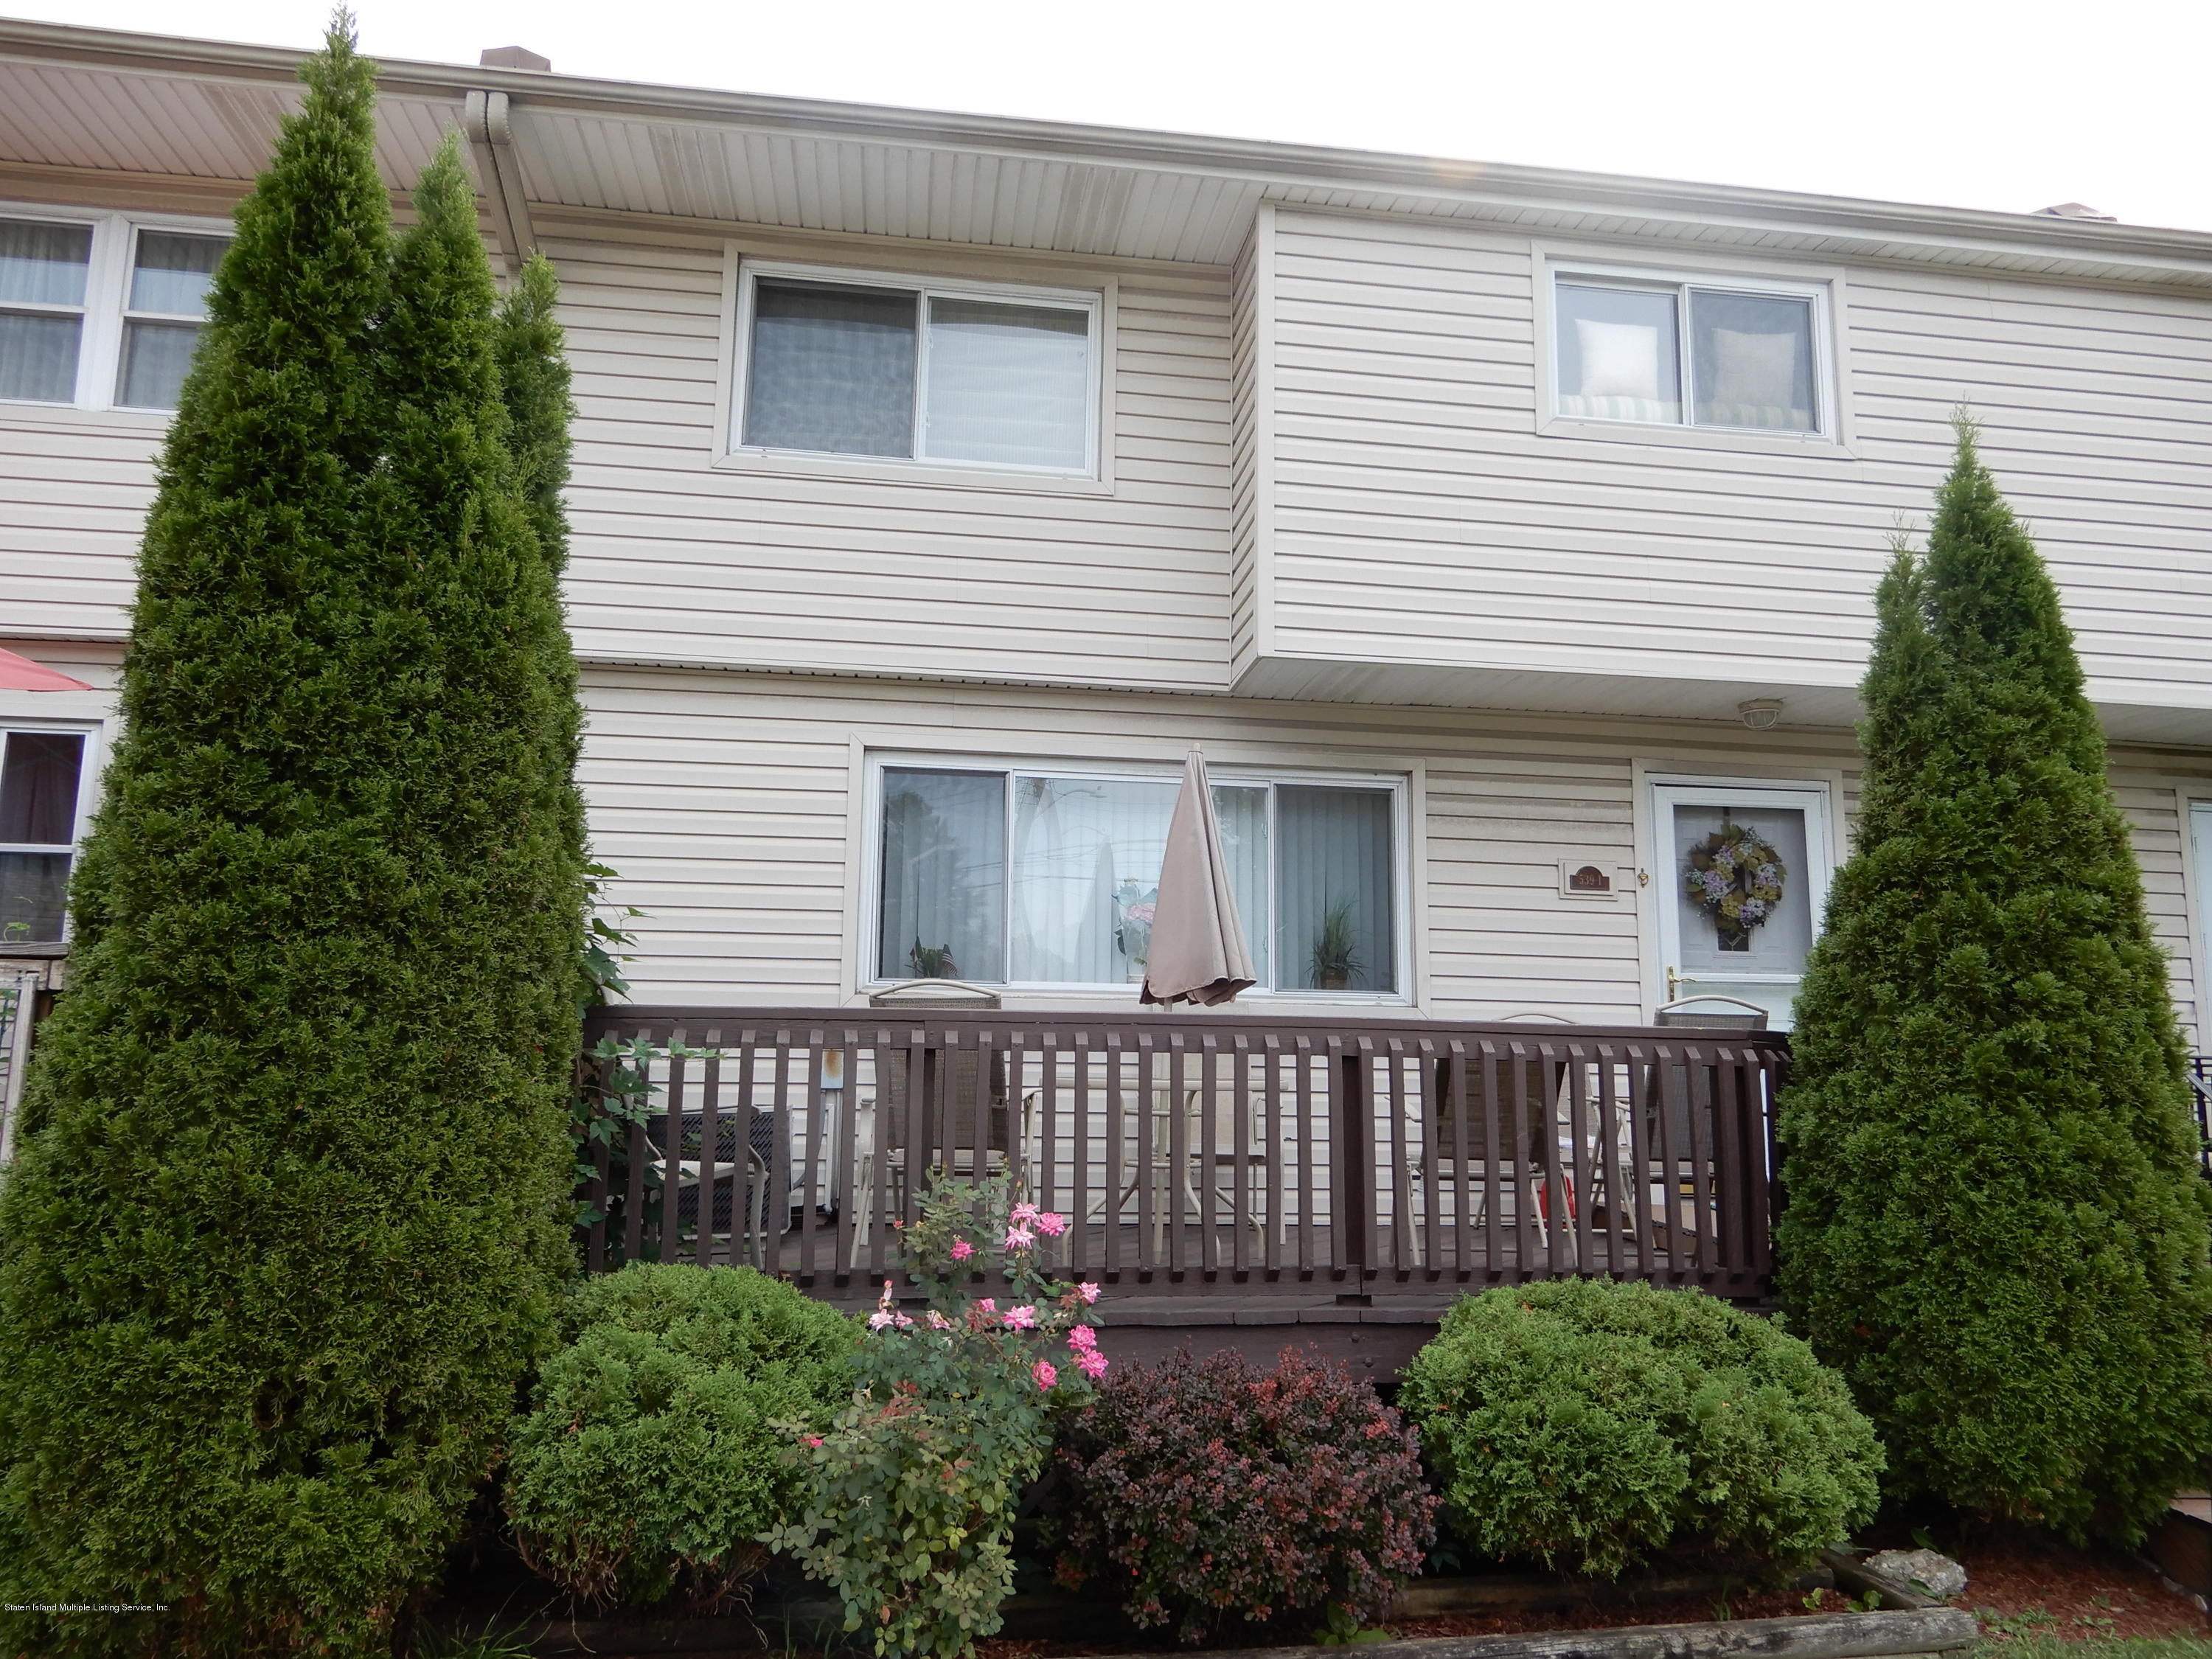 Condo in Westerleigh - 539-1 Willow Road  Staten Island, NY 10314